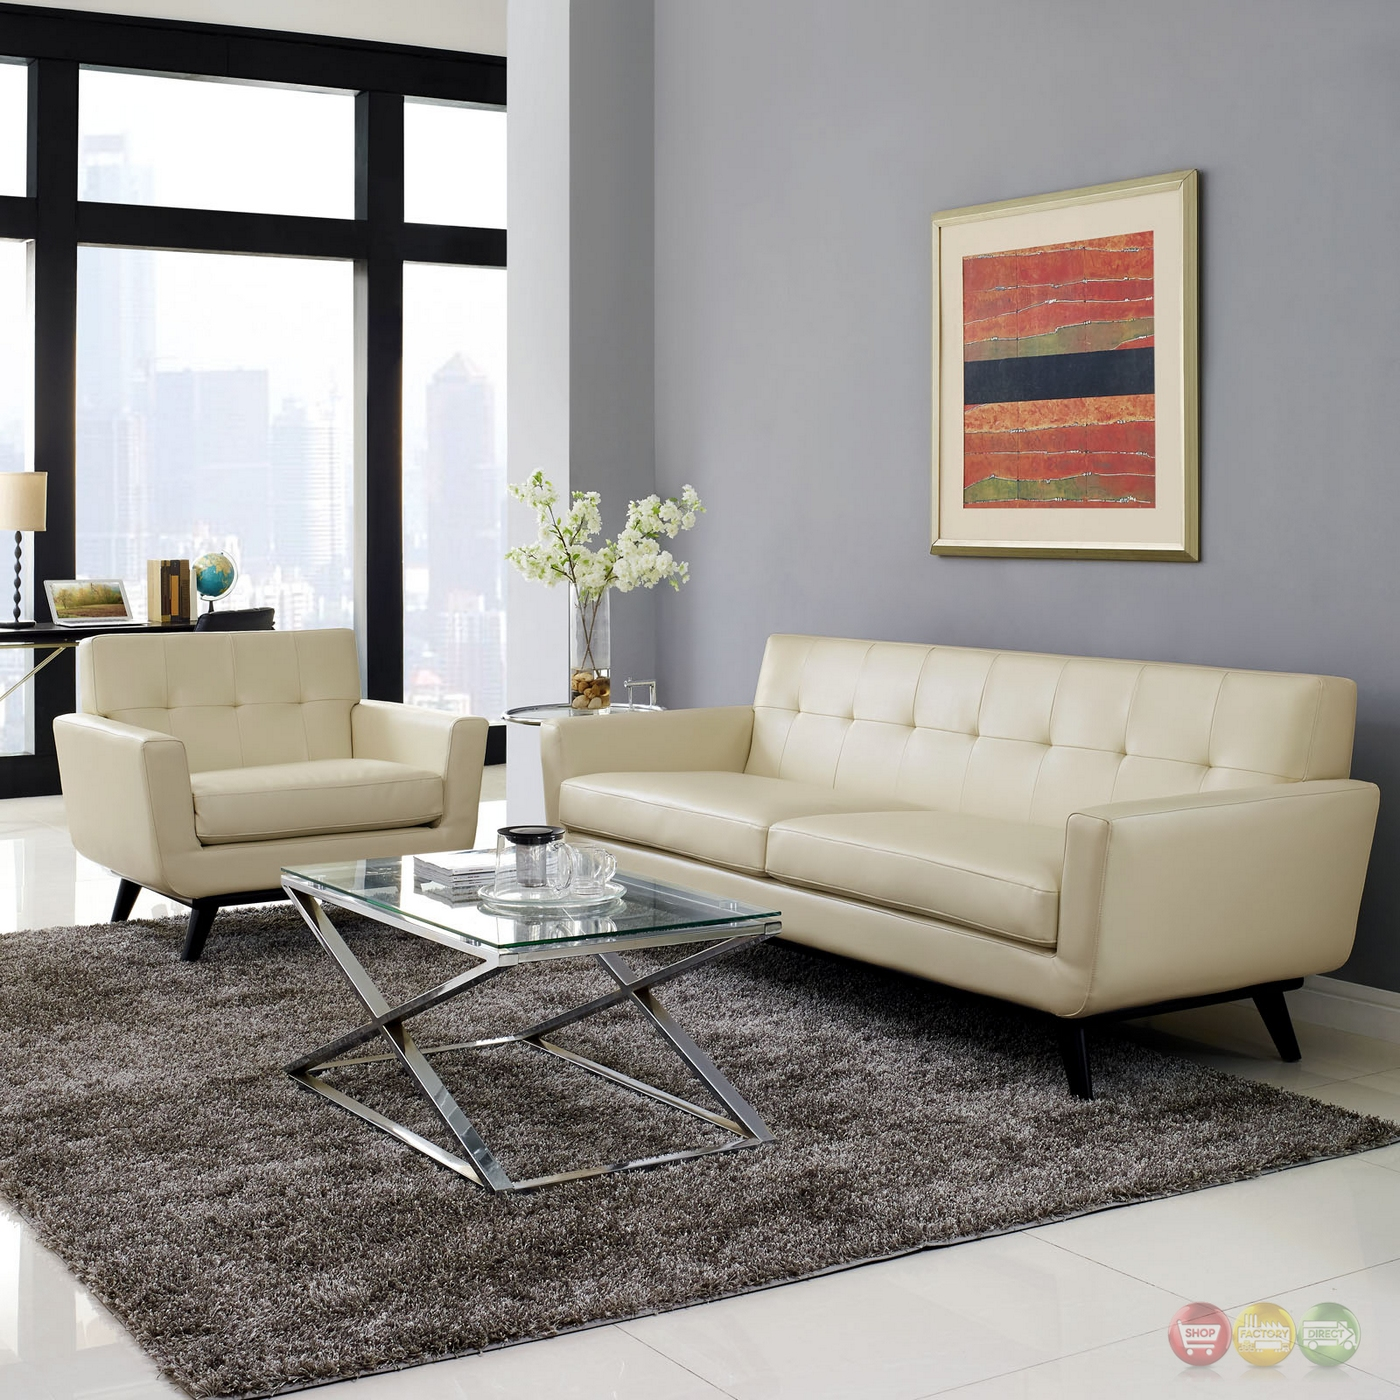 engage contemporary 2pc button tufted leather living room set beige. Black Bedroom Furniture Sets. Home Design Ideas